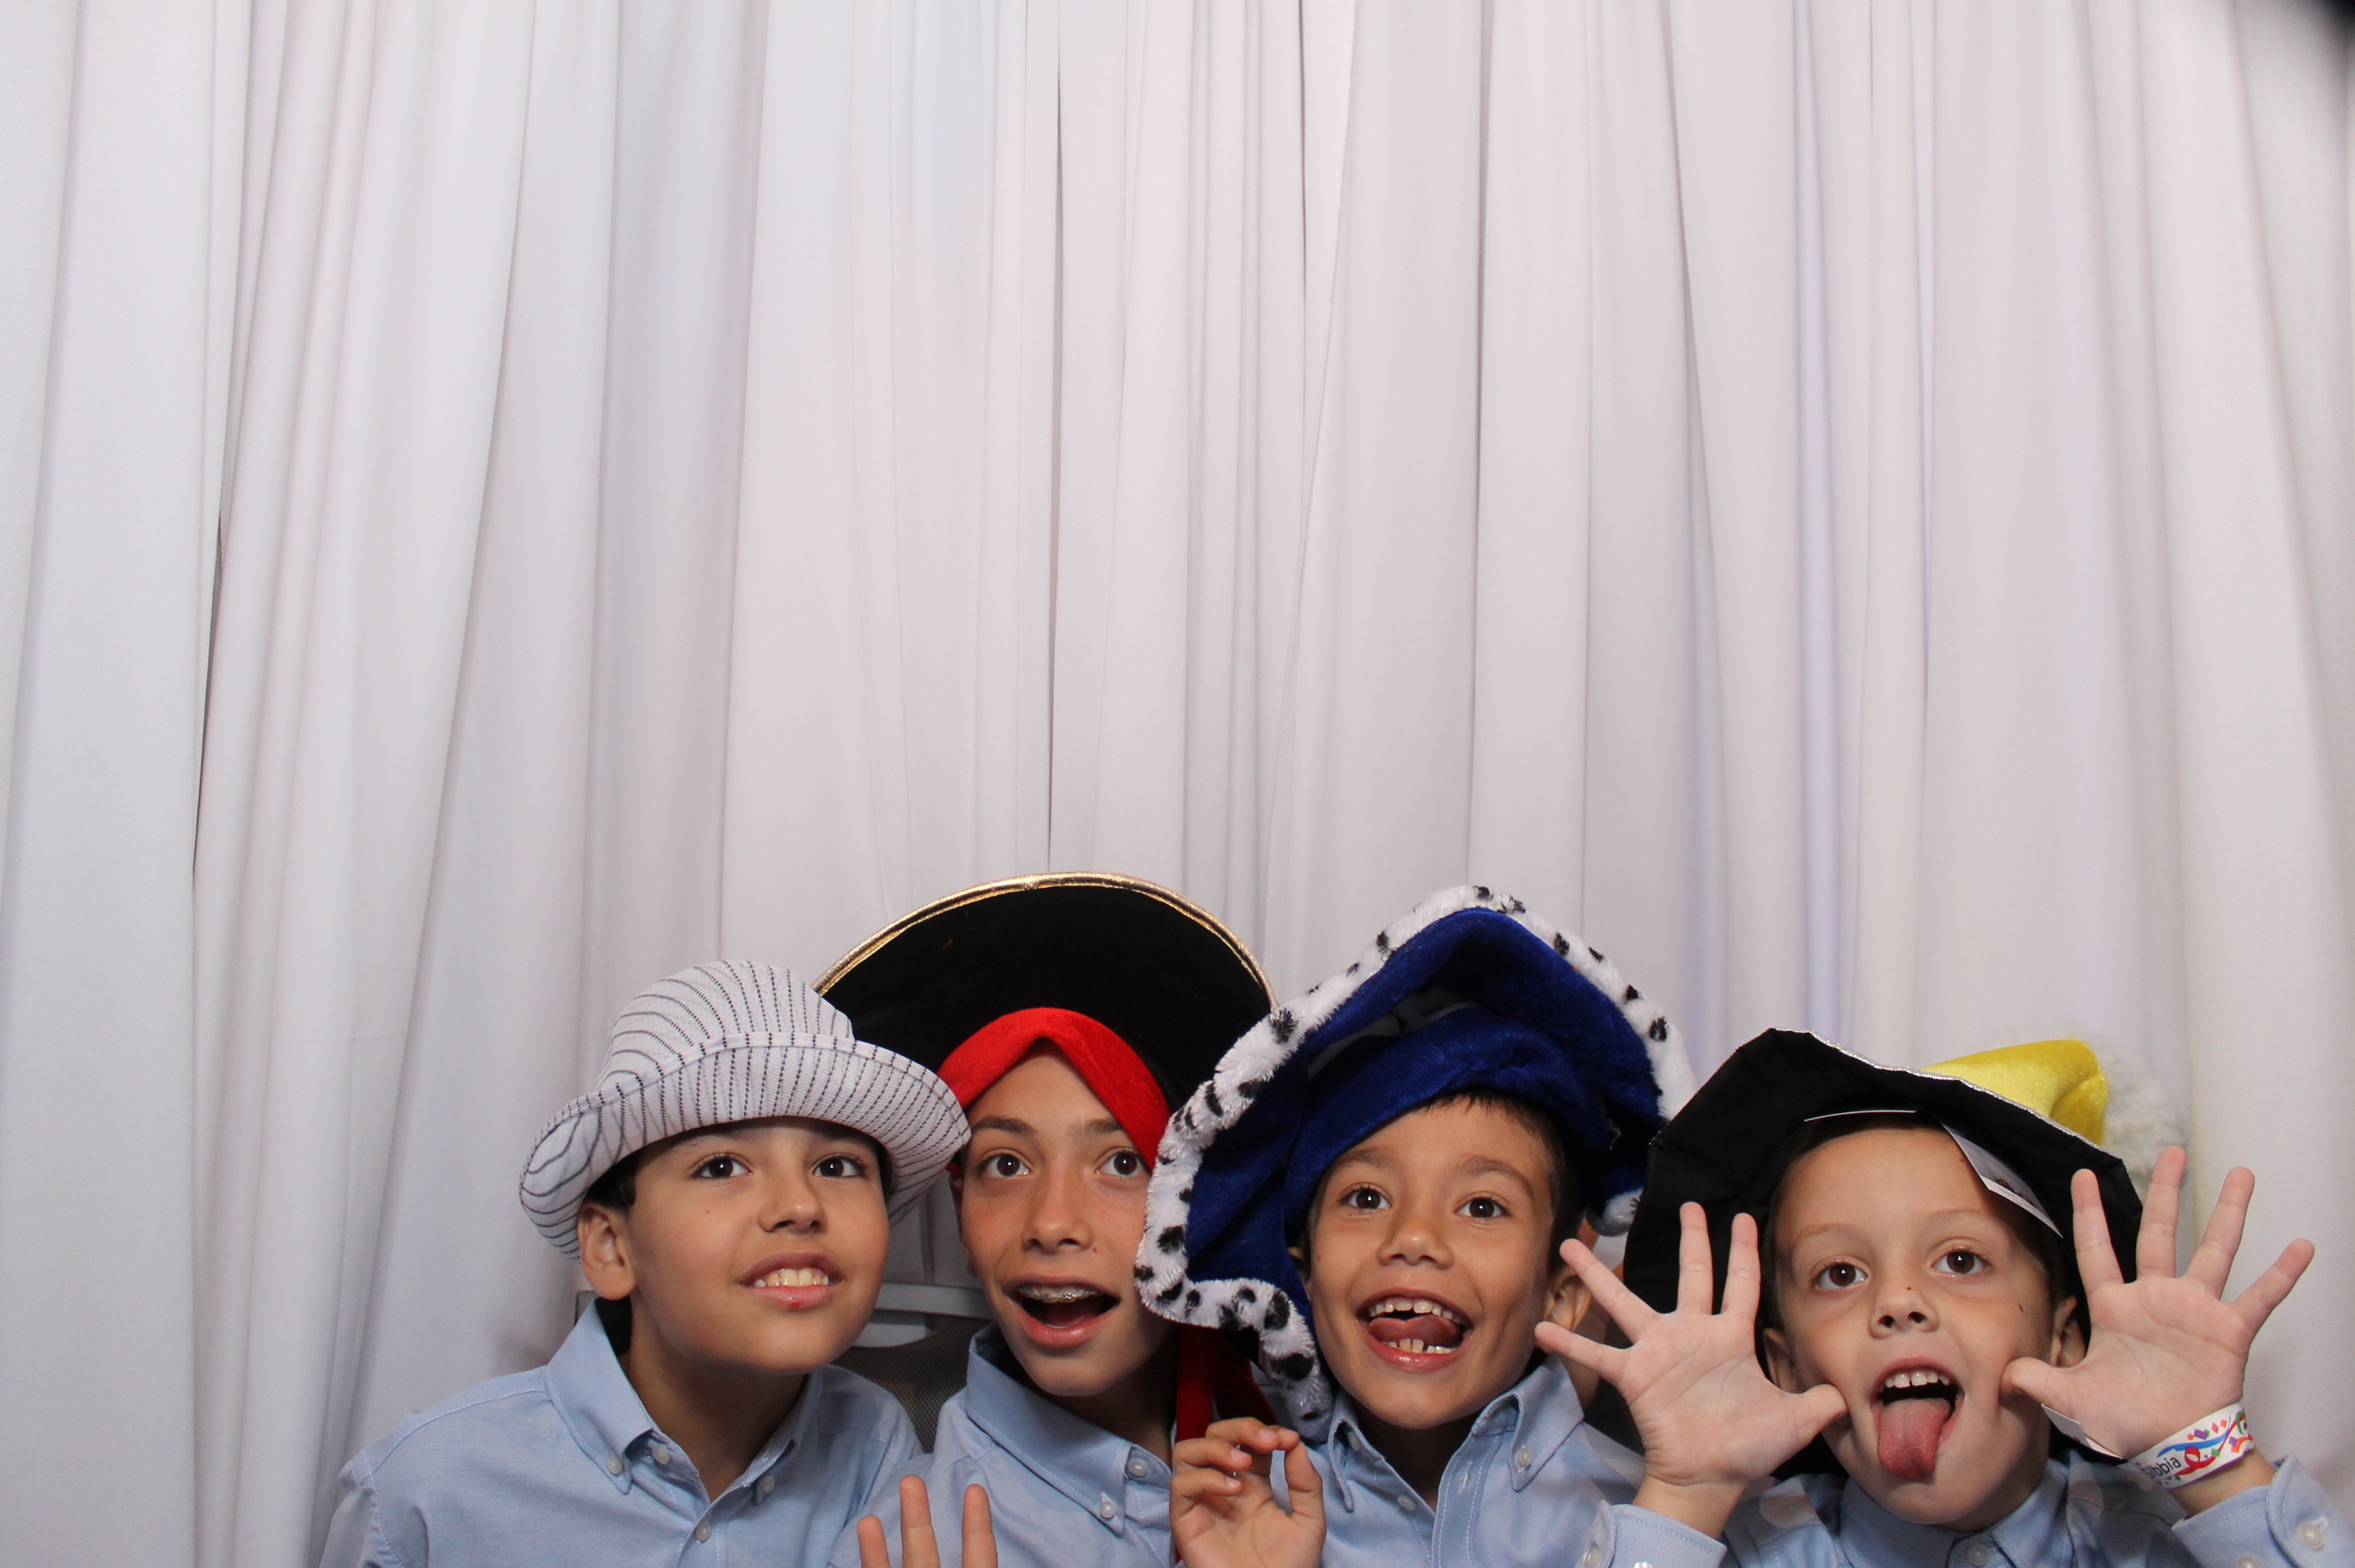 Snapshot Photobooths at the Radisson in Freehold, New Jersey